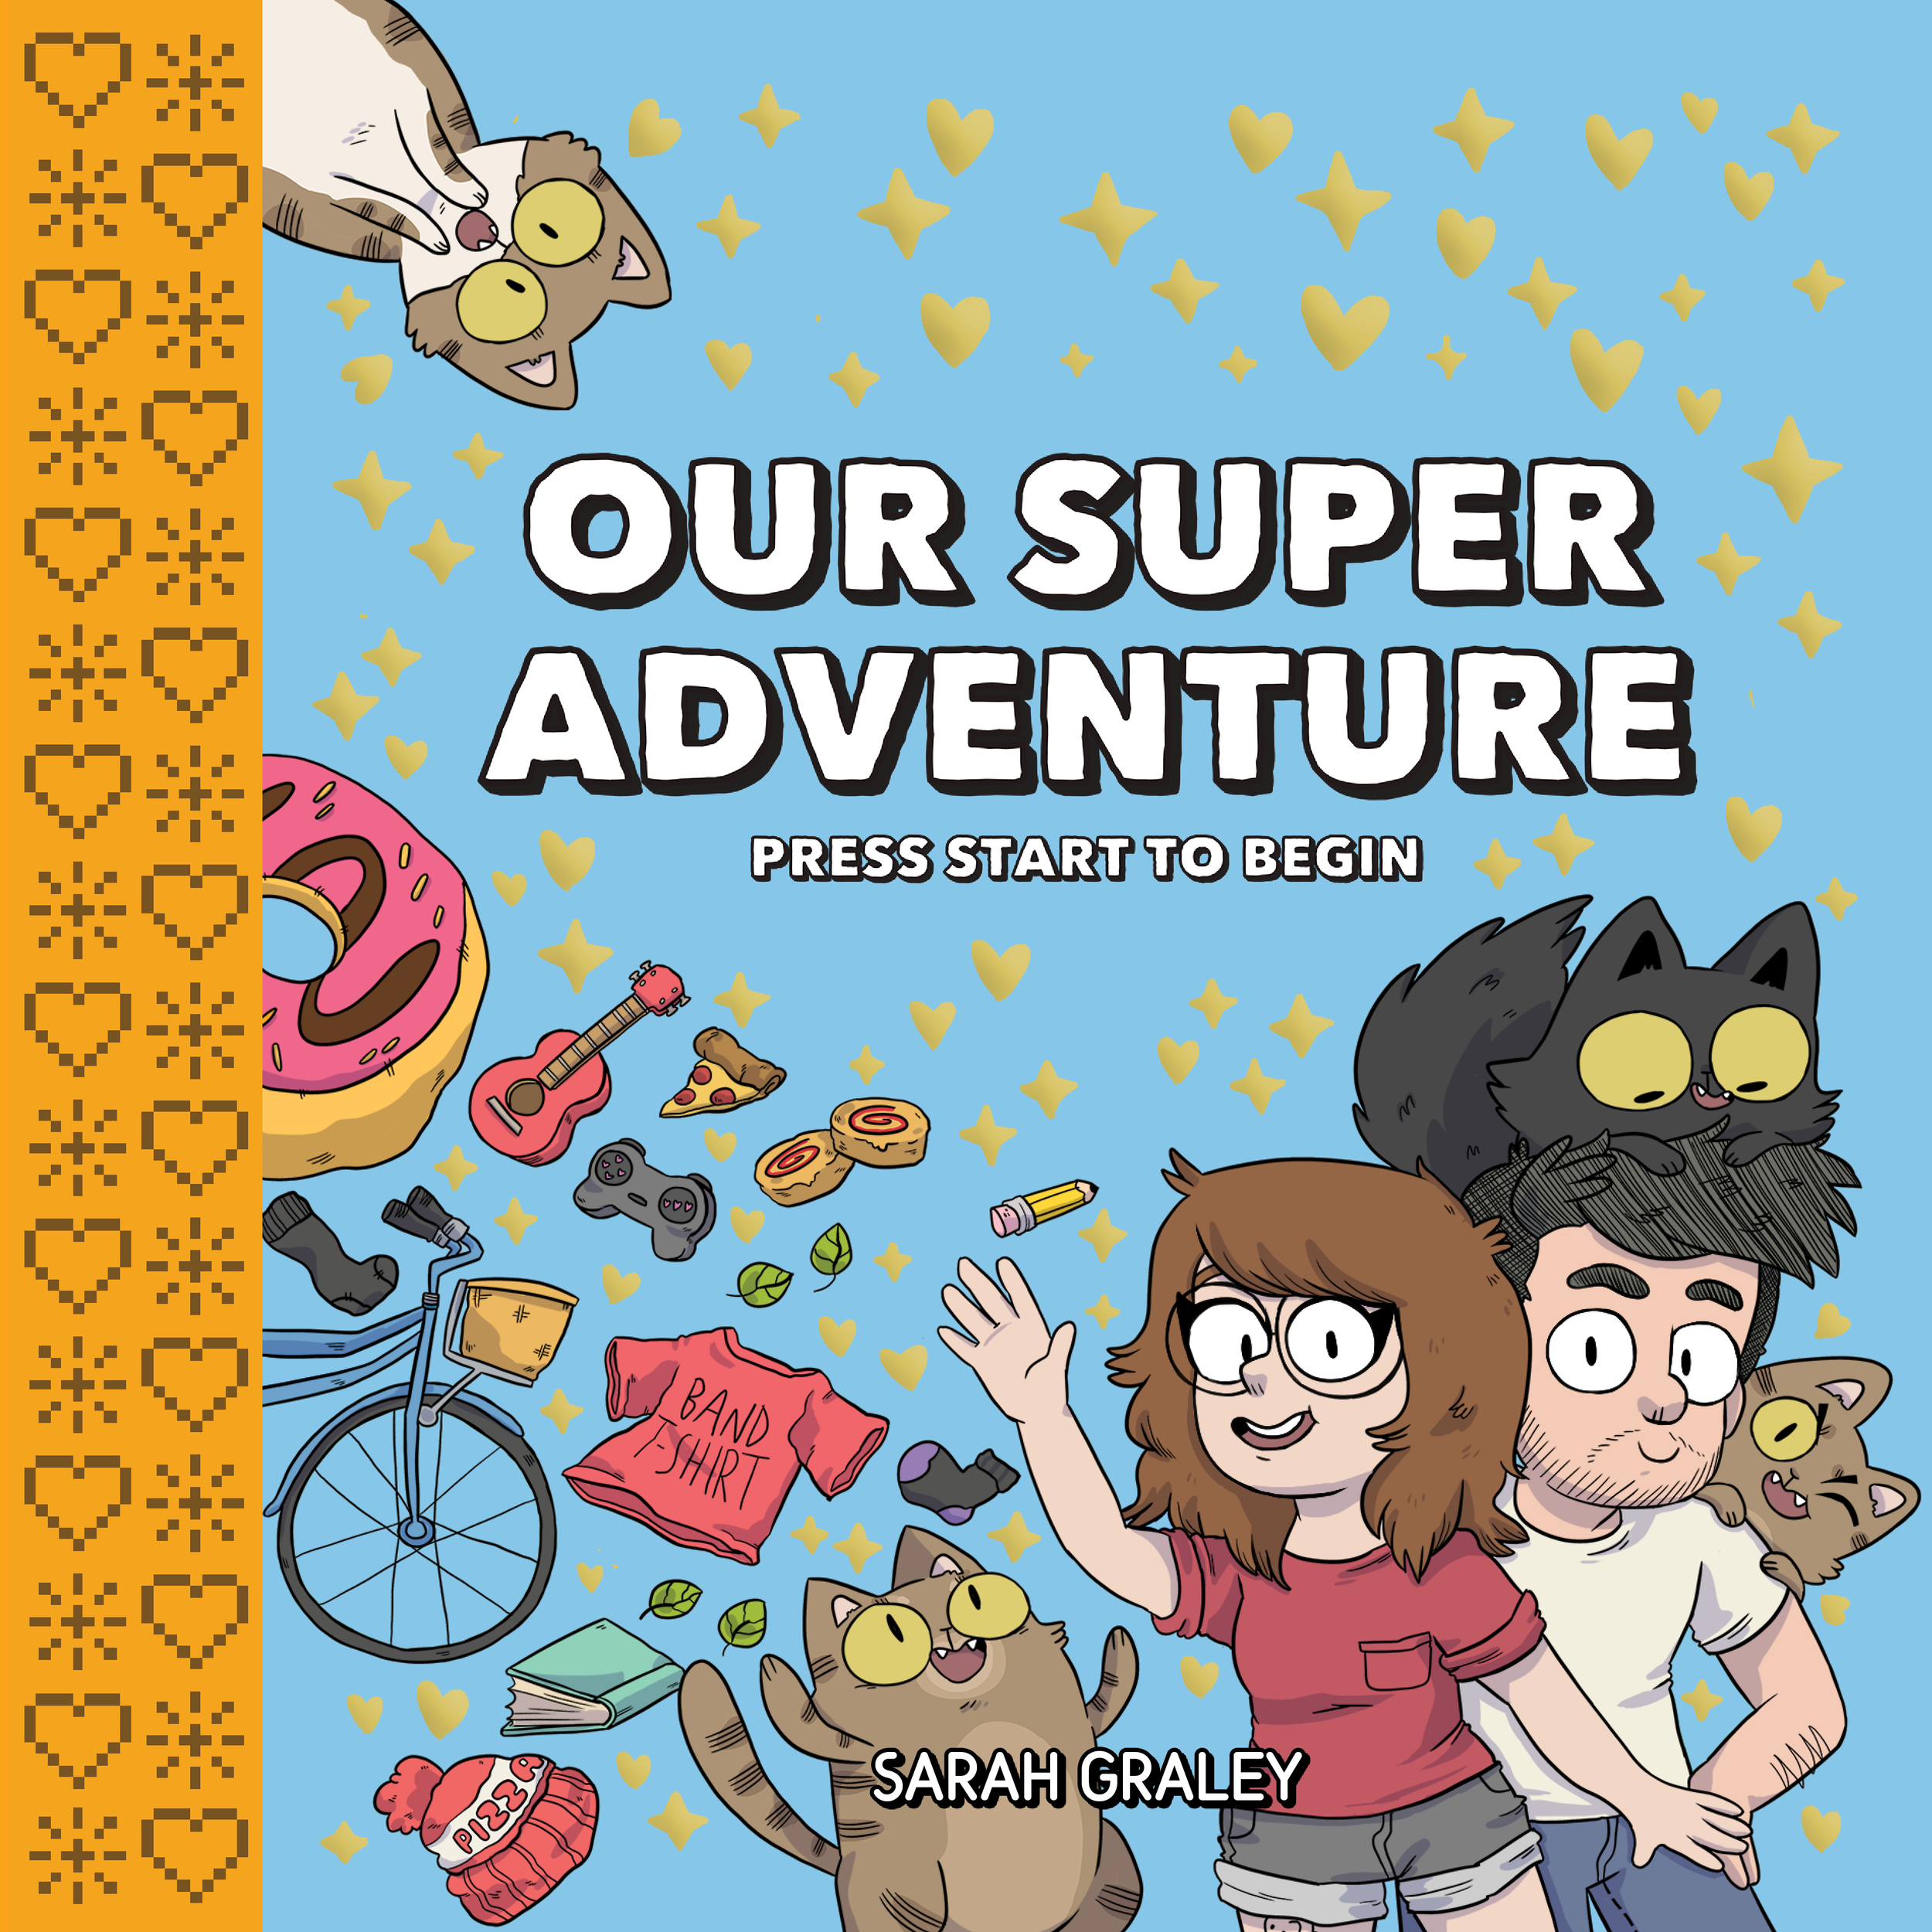 Our Super Adventure Press Start To Begin Oni.png